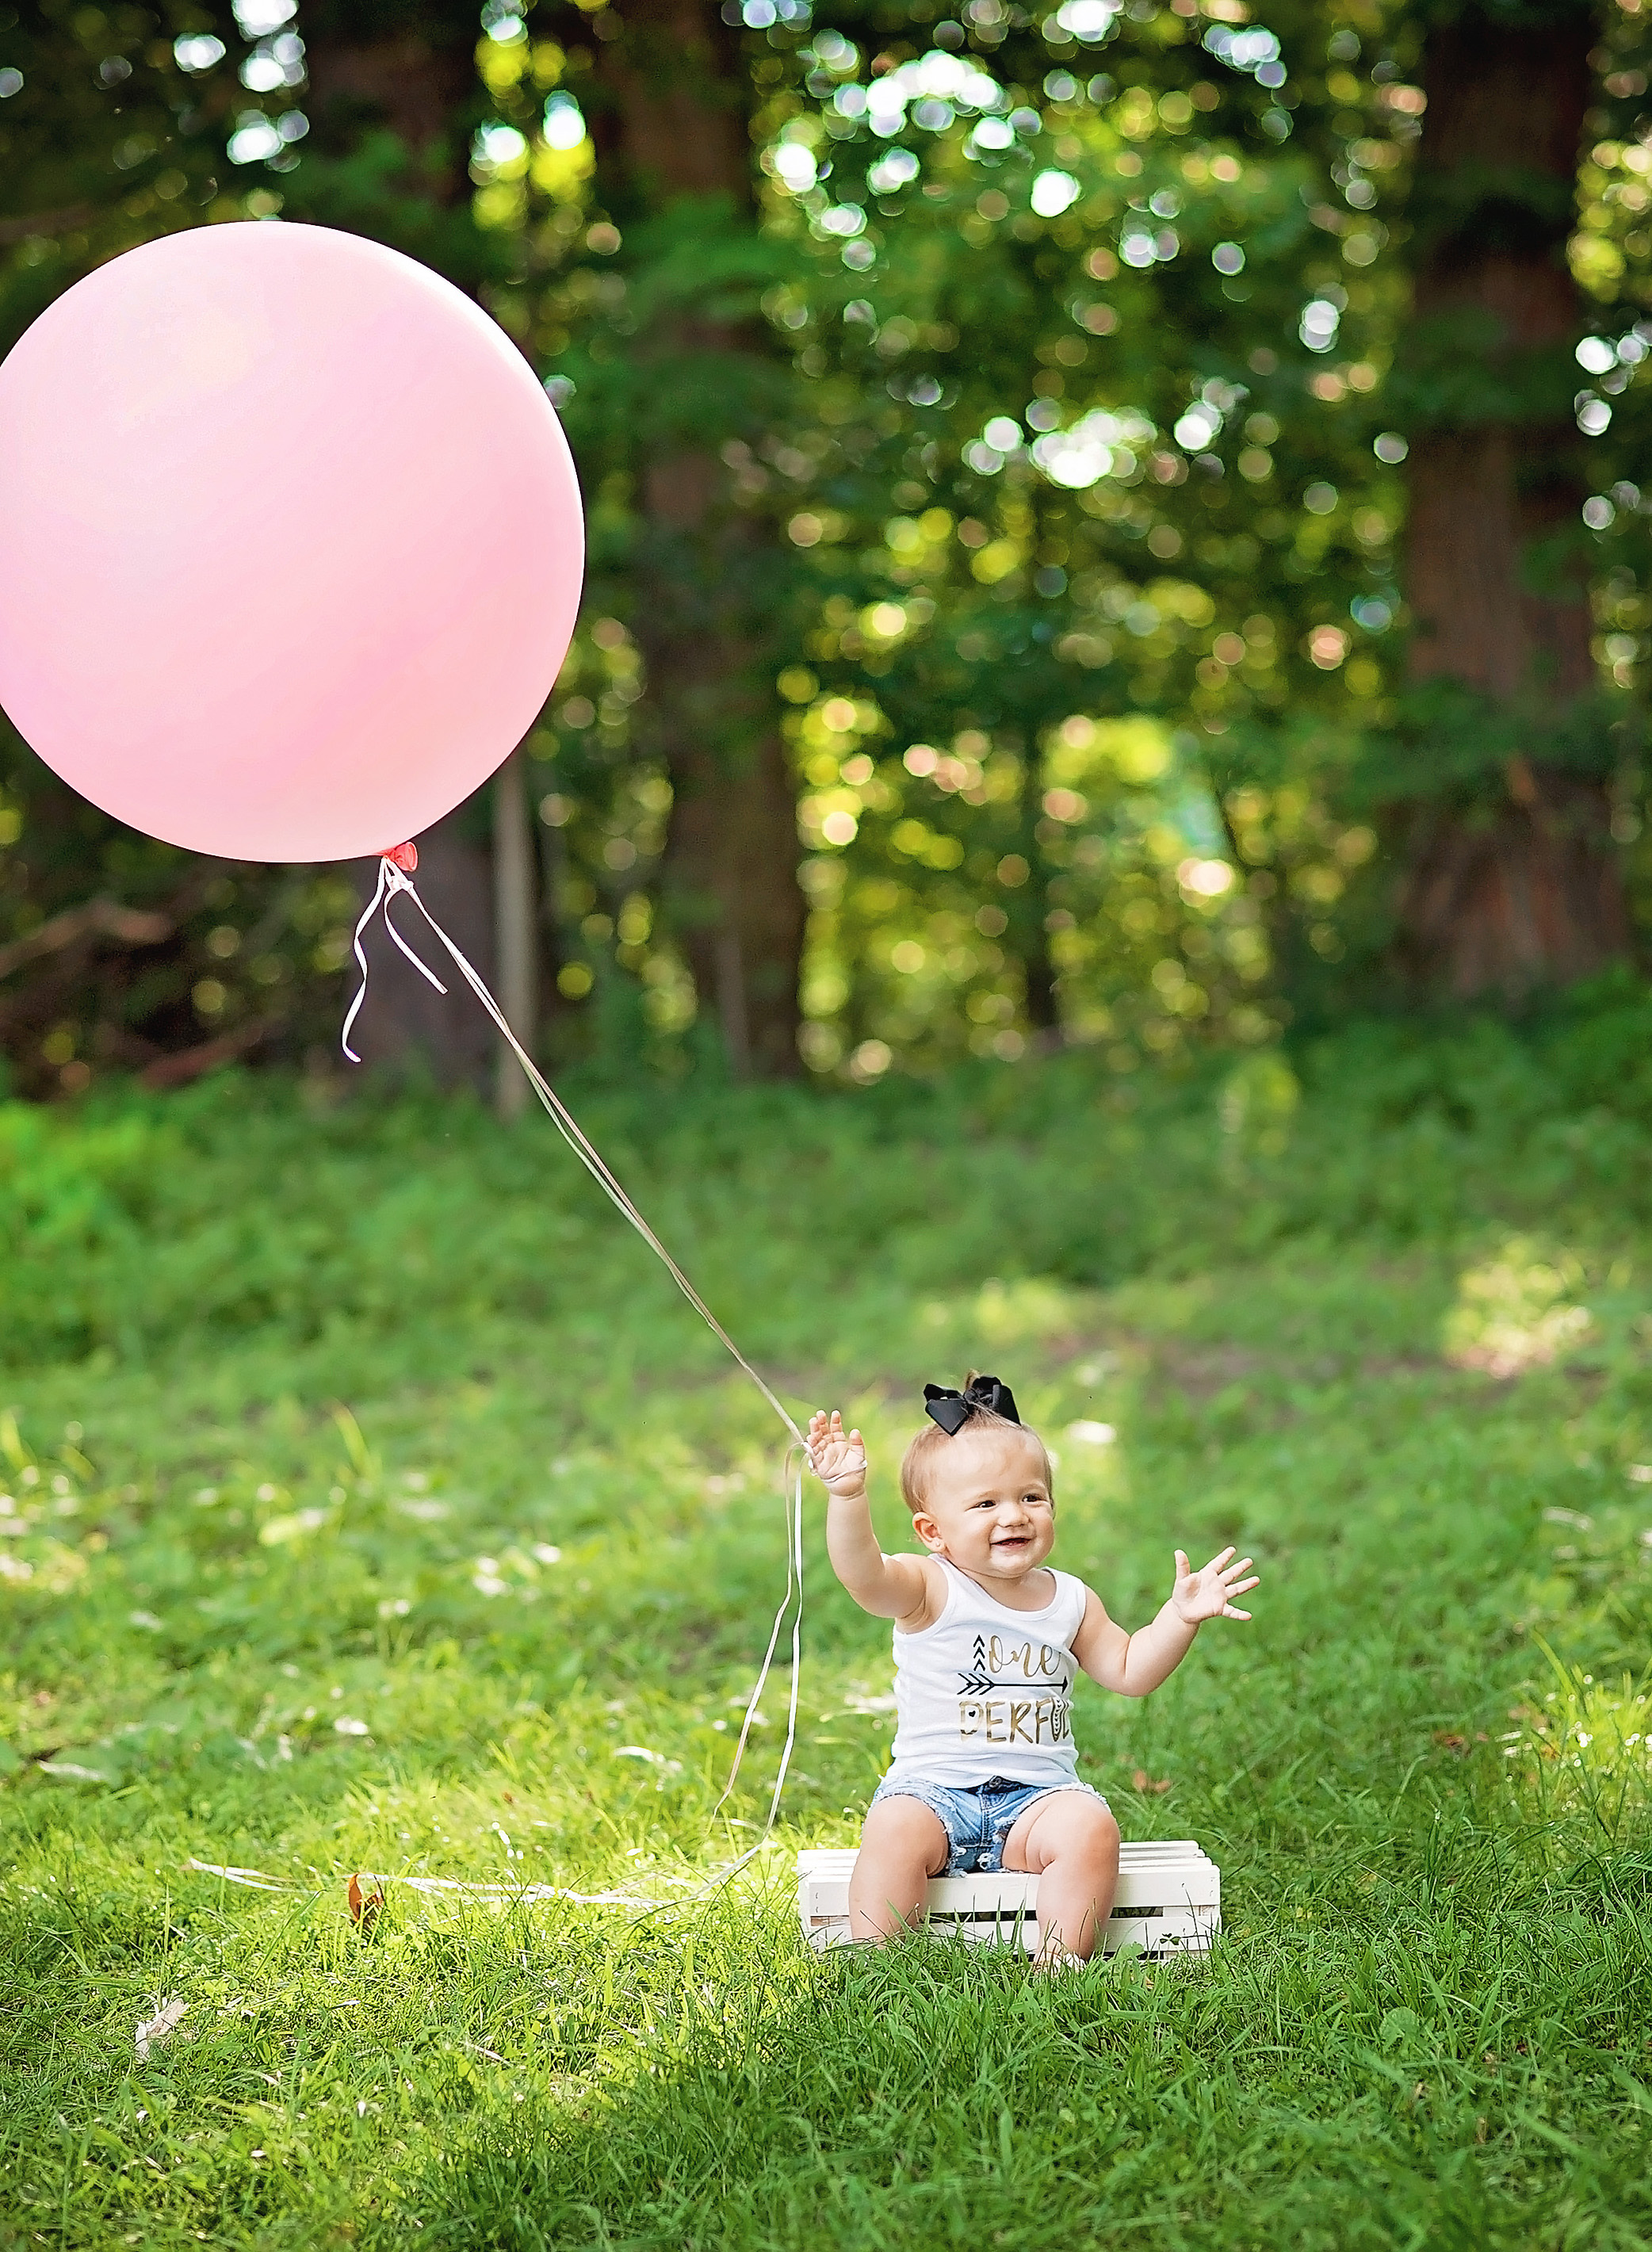 babygirl with large pink baloon